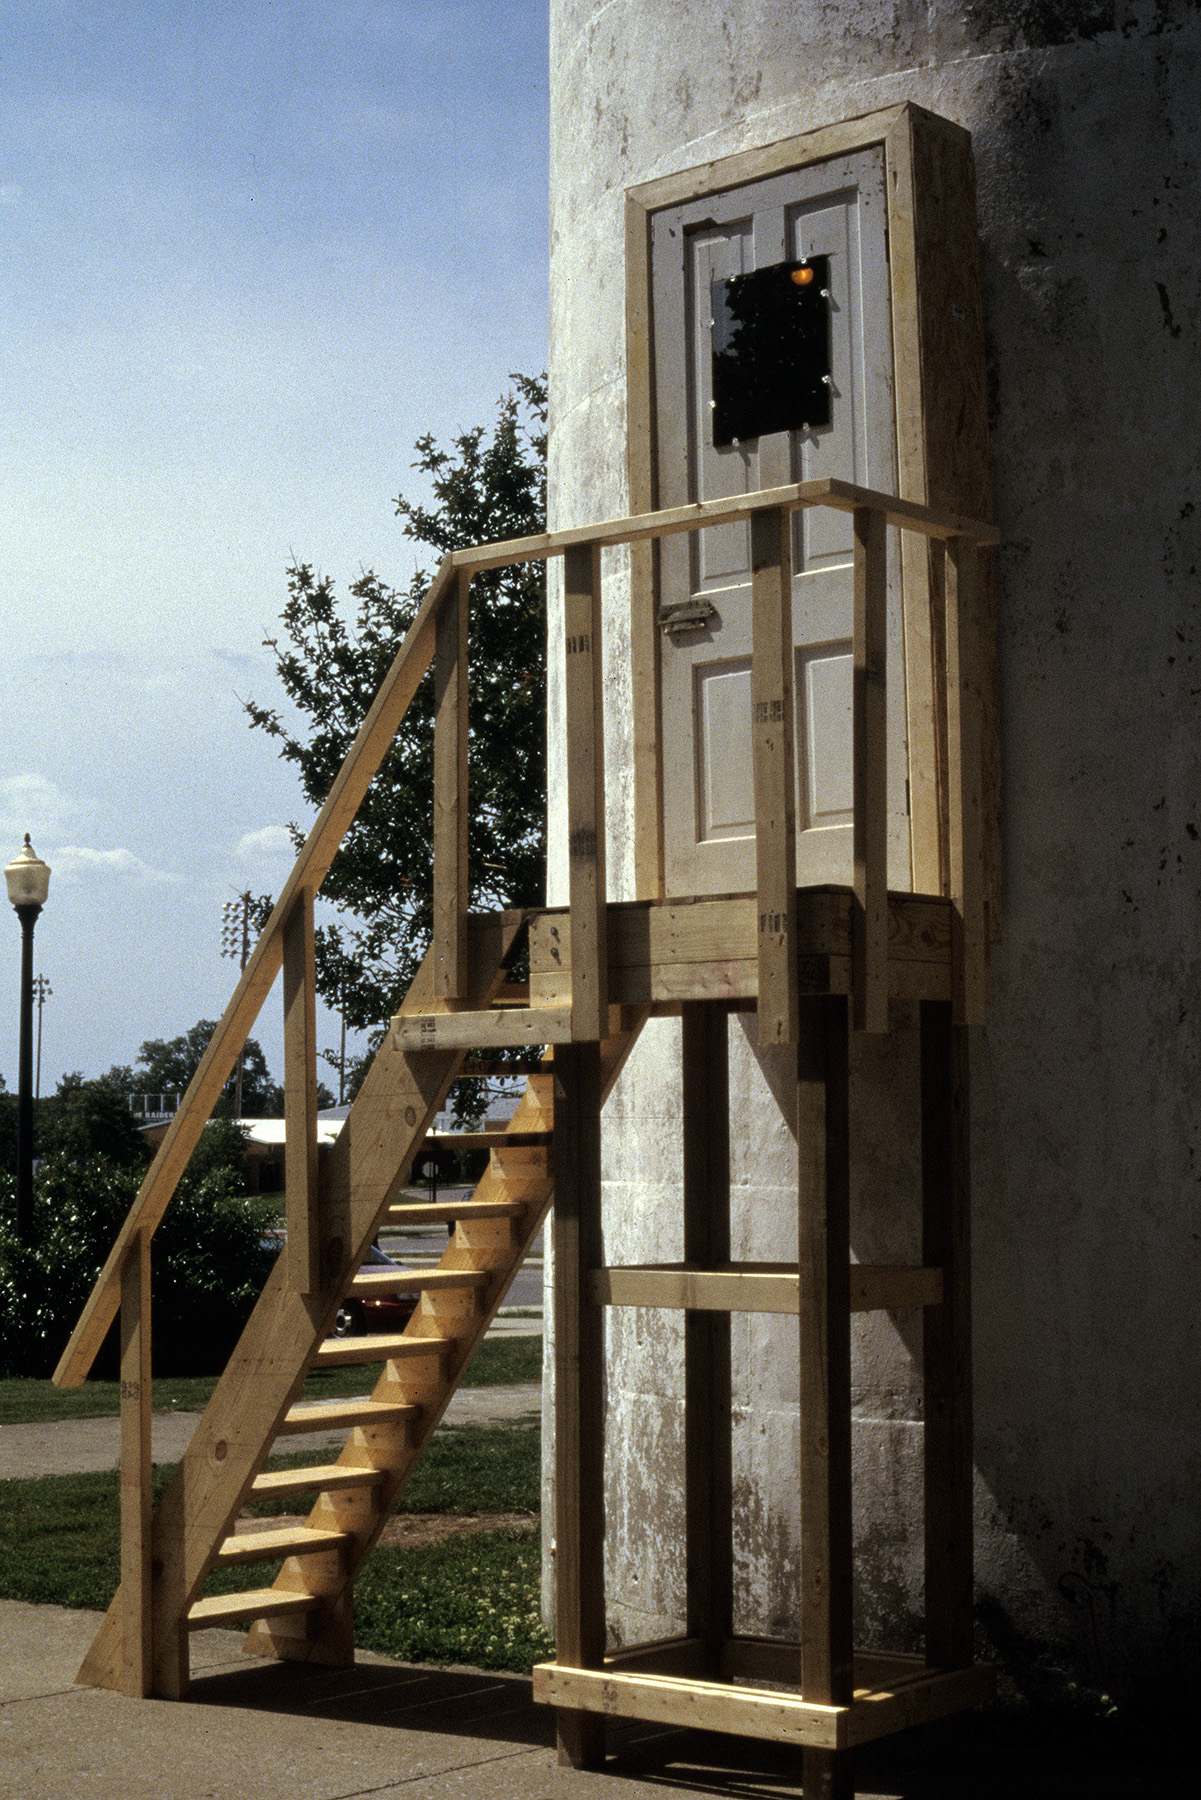 Untitled (Staircase)  / 2003 / Wood, mirrors, light / 16' x 8' x 3'